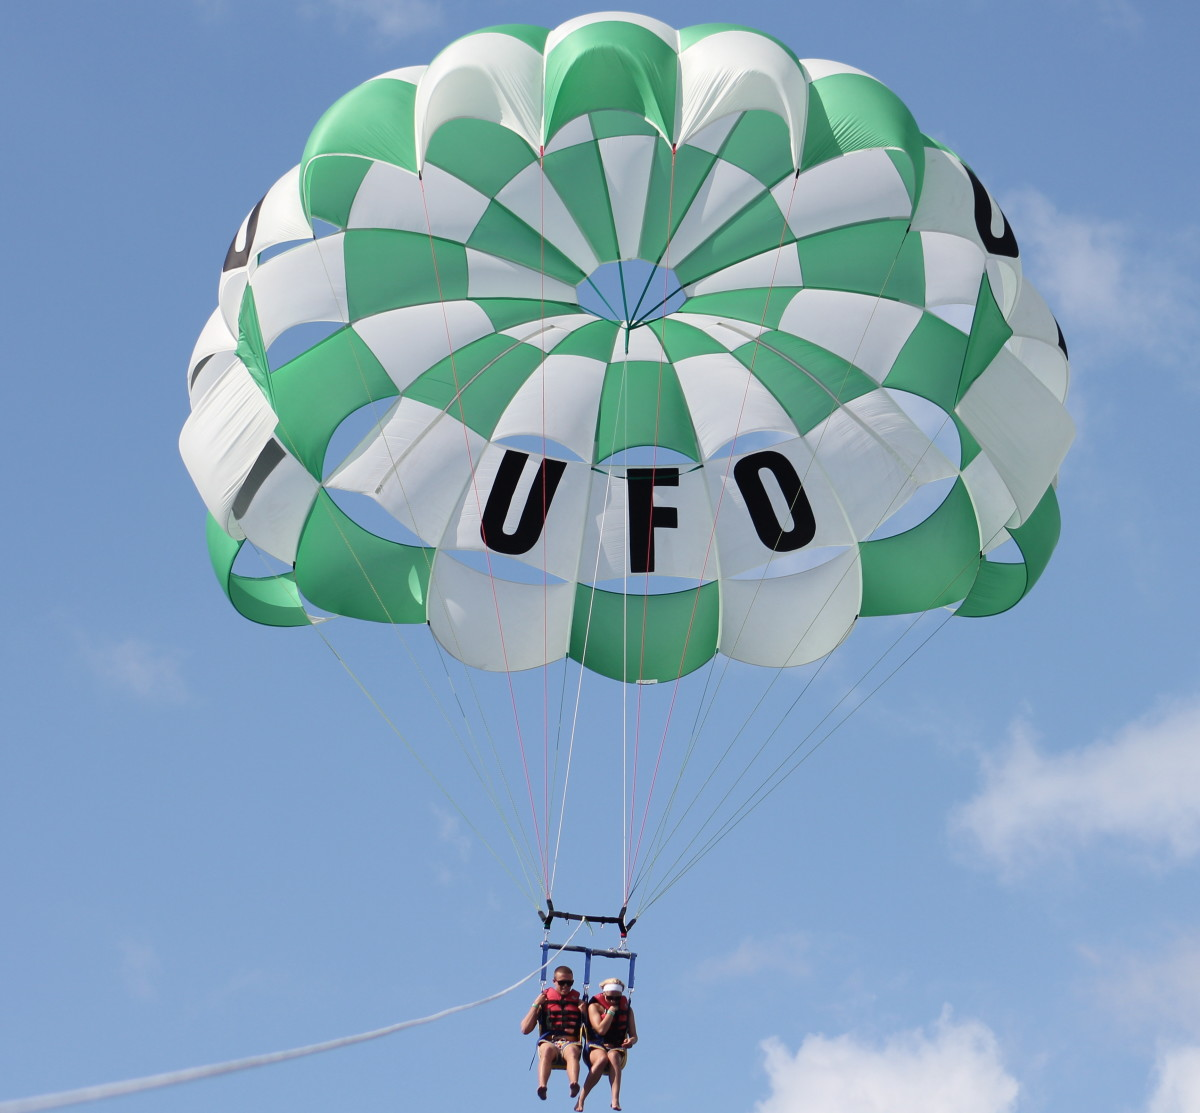 UFO Parasailing in Kona, Hawaii.